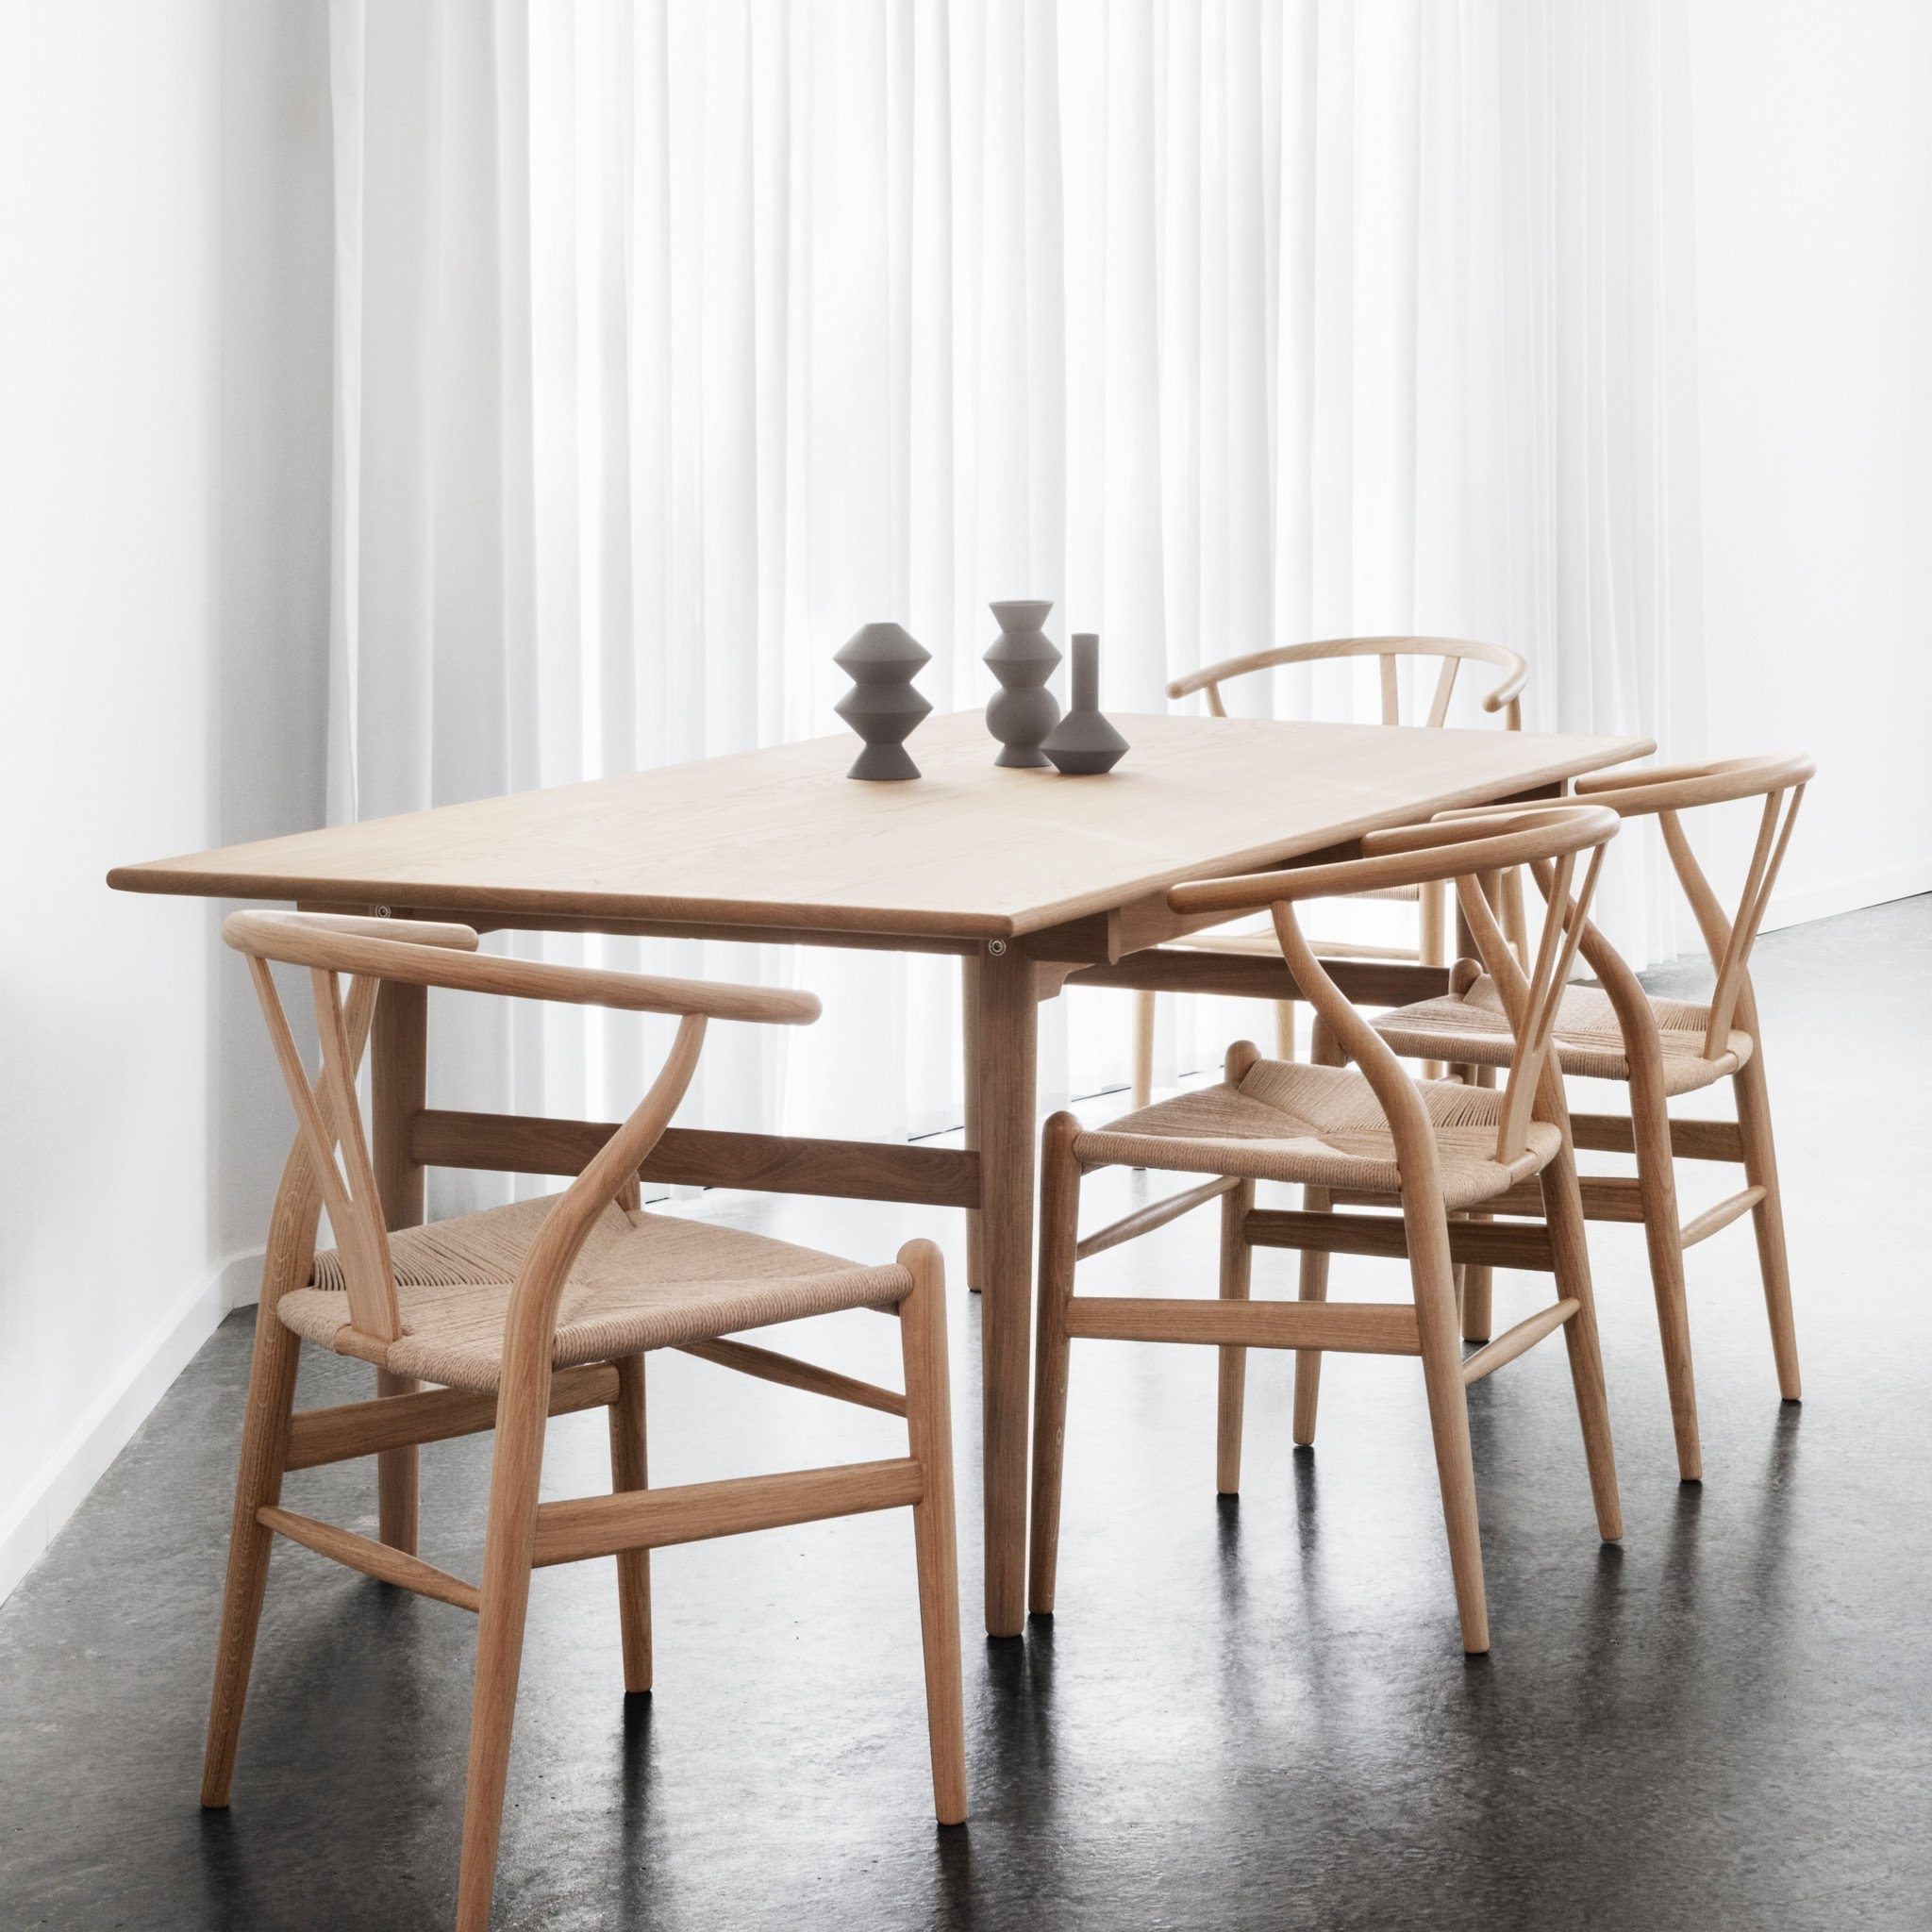 Newest Ch327 Dining Tablecarl Hansen & Søn — Haus® Regarding London Dining Tables (View 20 of 25)